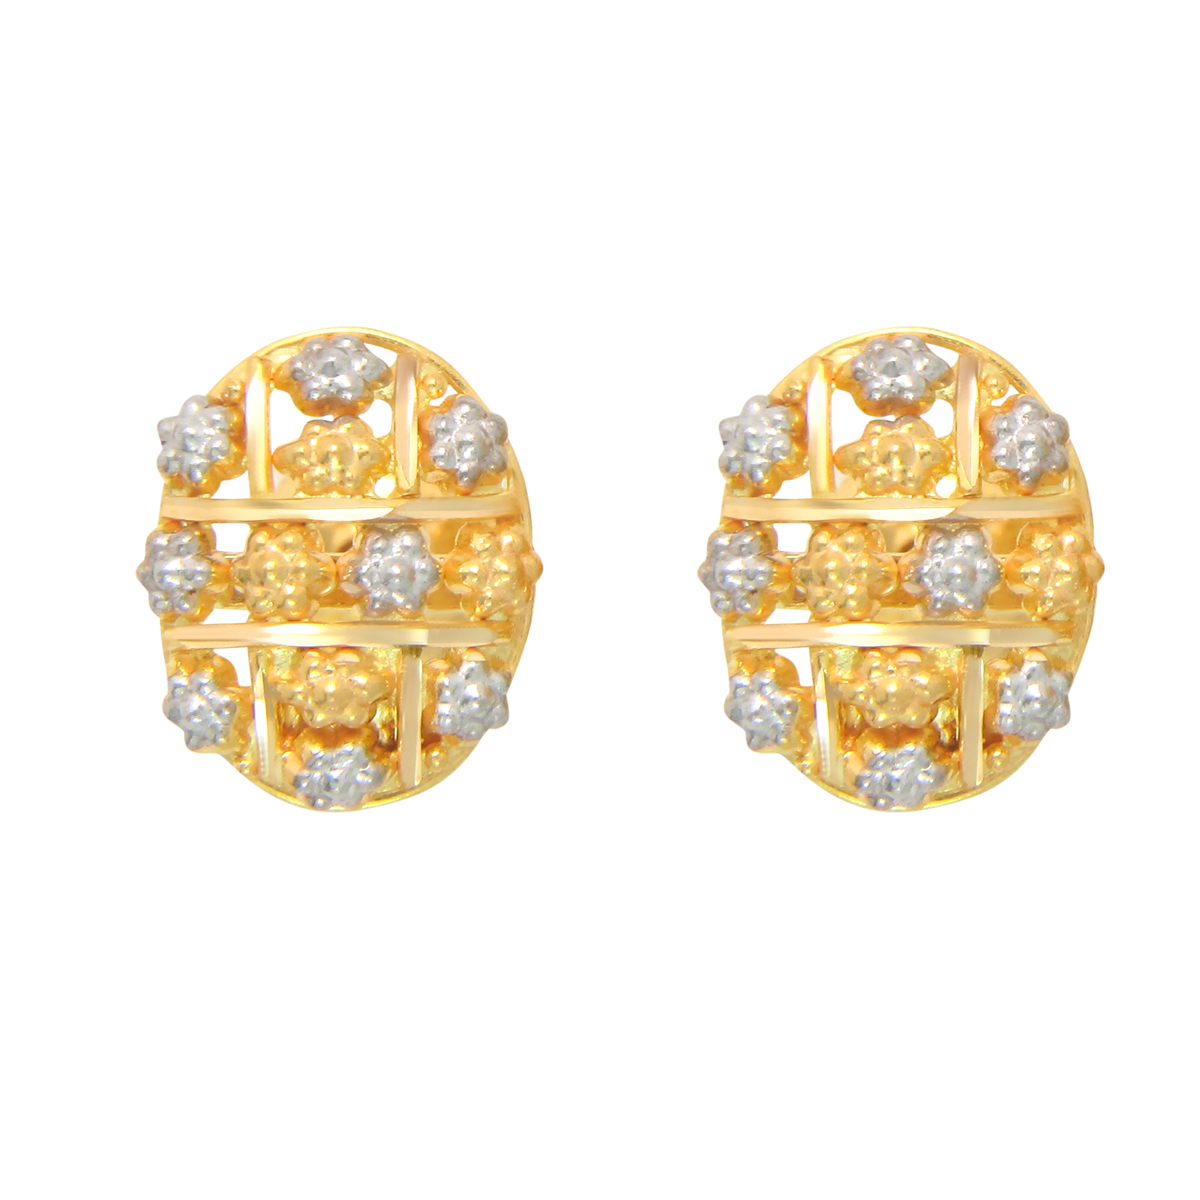 Popley 22Kt Gold Bandhan Earring - A9